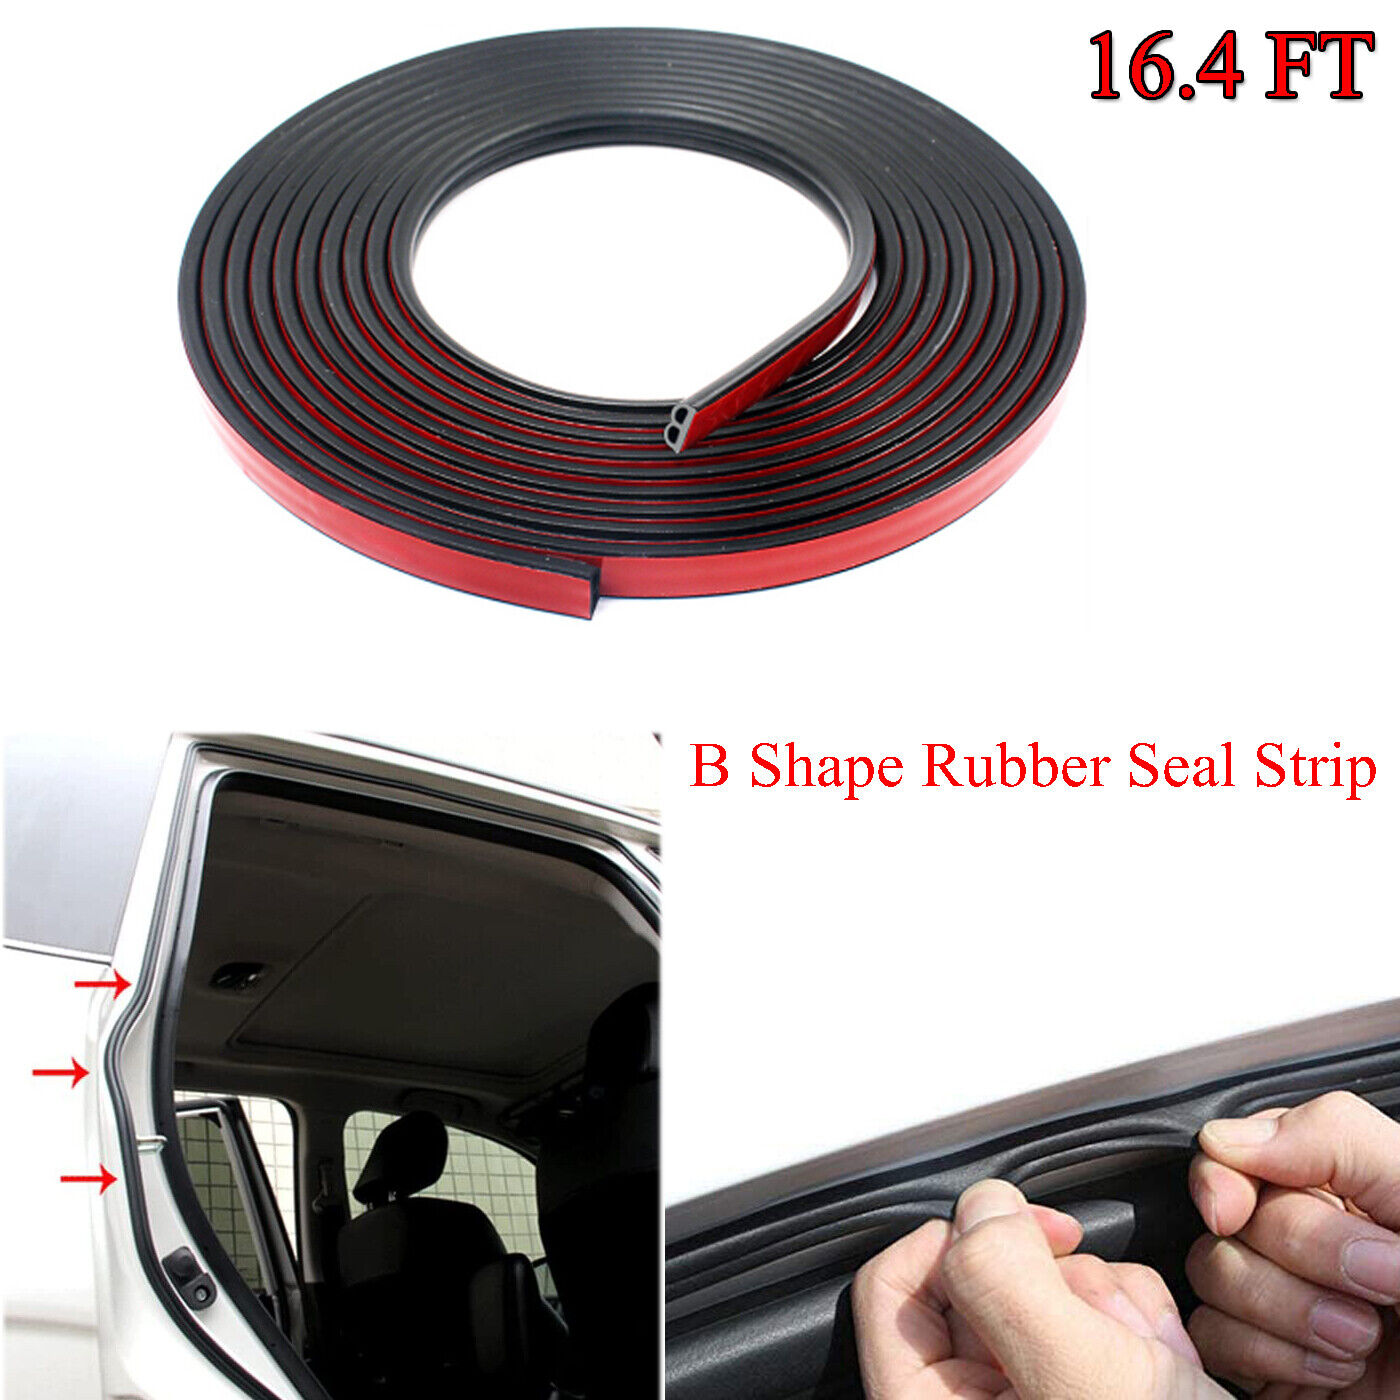 B-Shape Weather Stripping Rubber Seal Soundproofing Hollow For Car Accessories